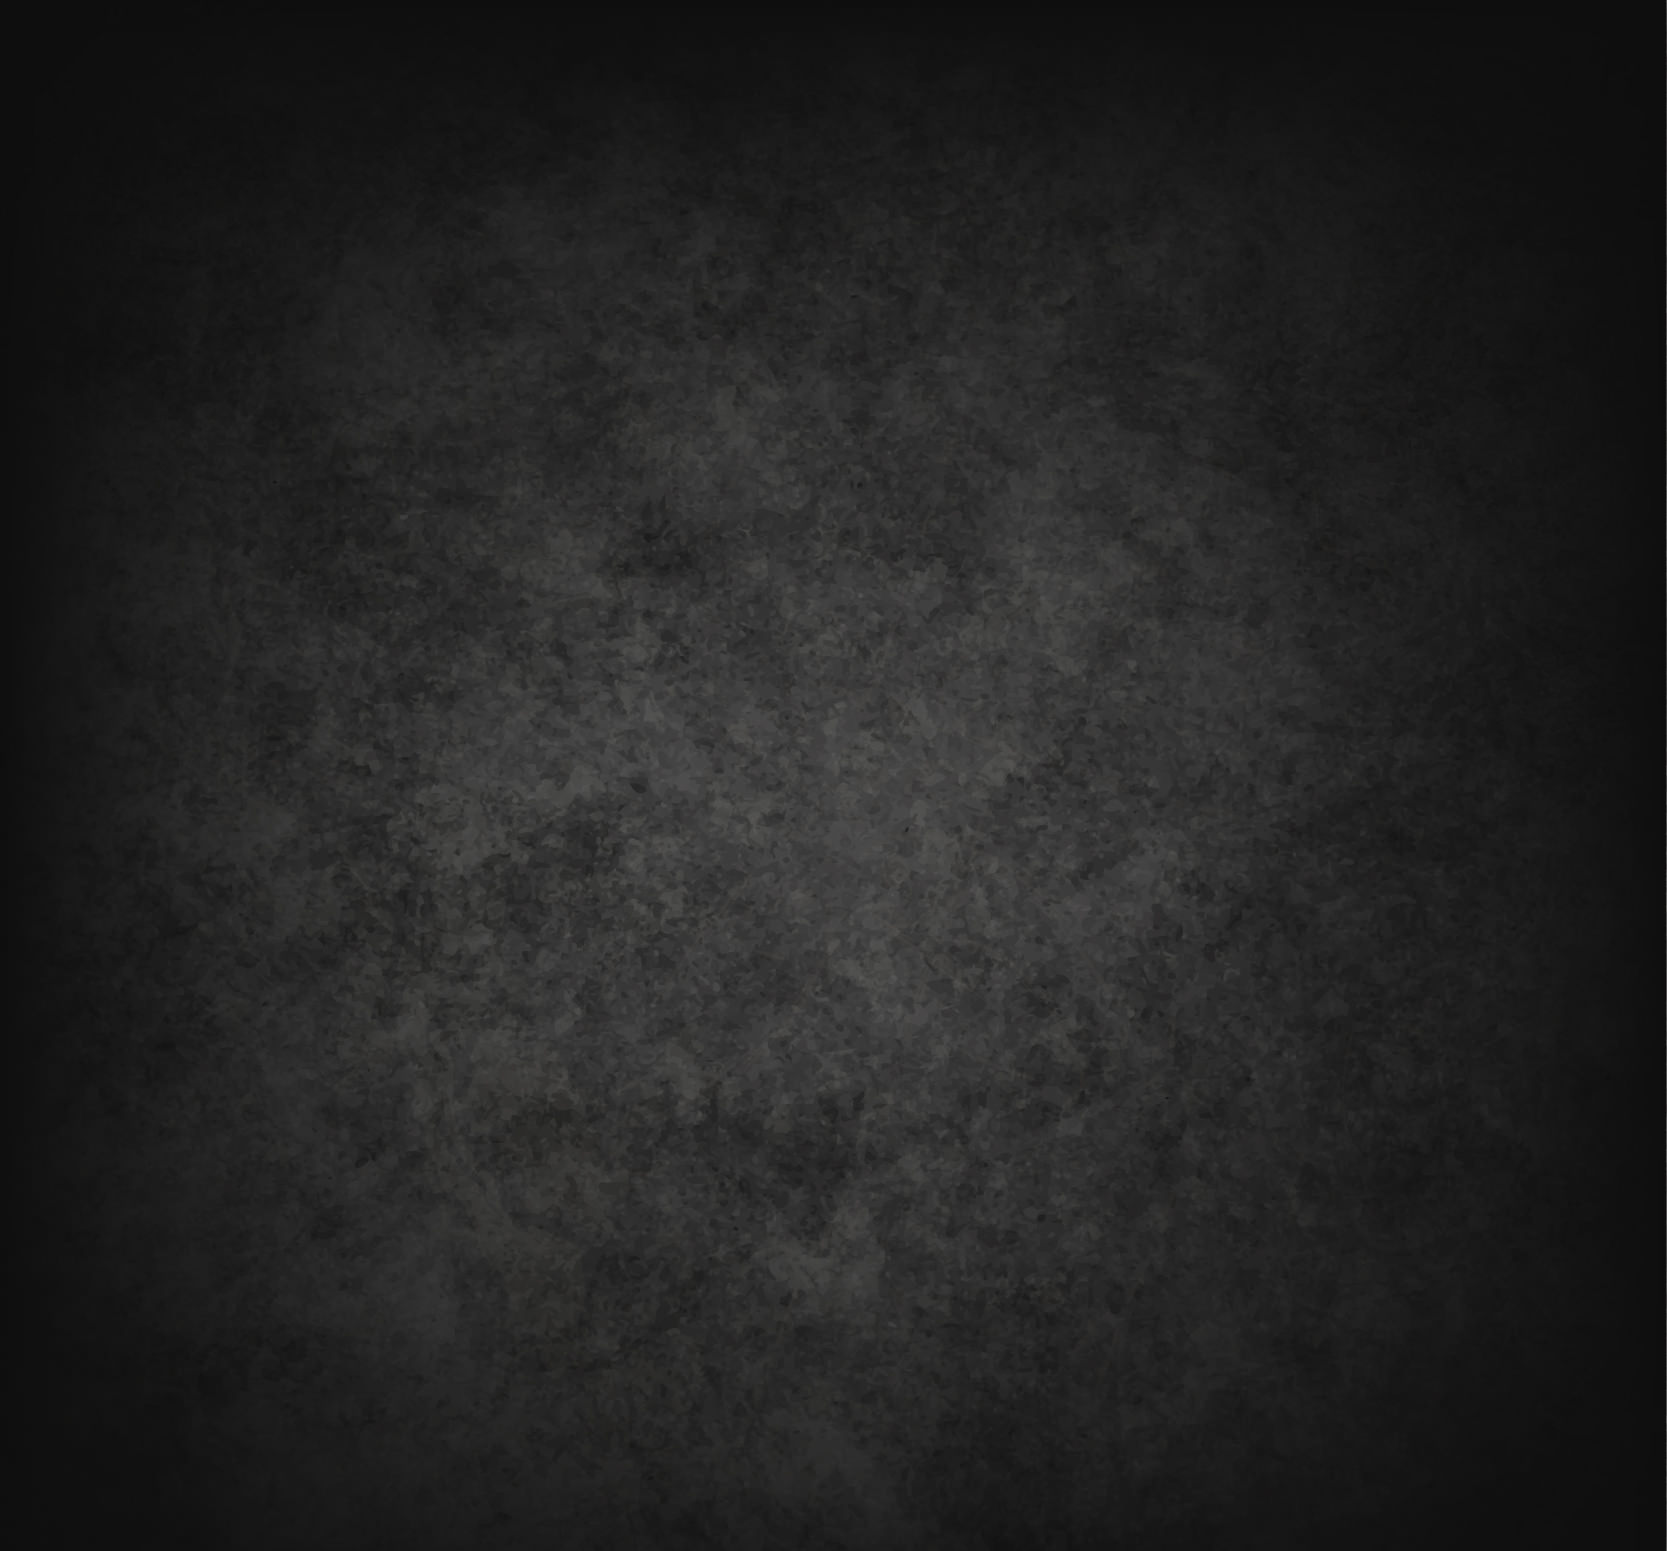 FREE 40+ Black Grunge Wallpapers In PSD